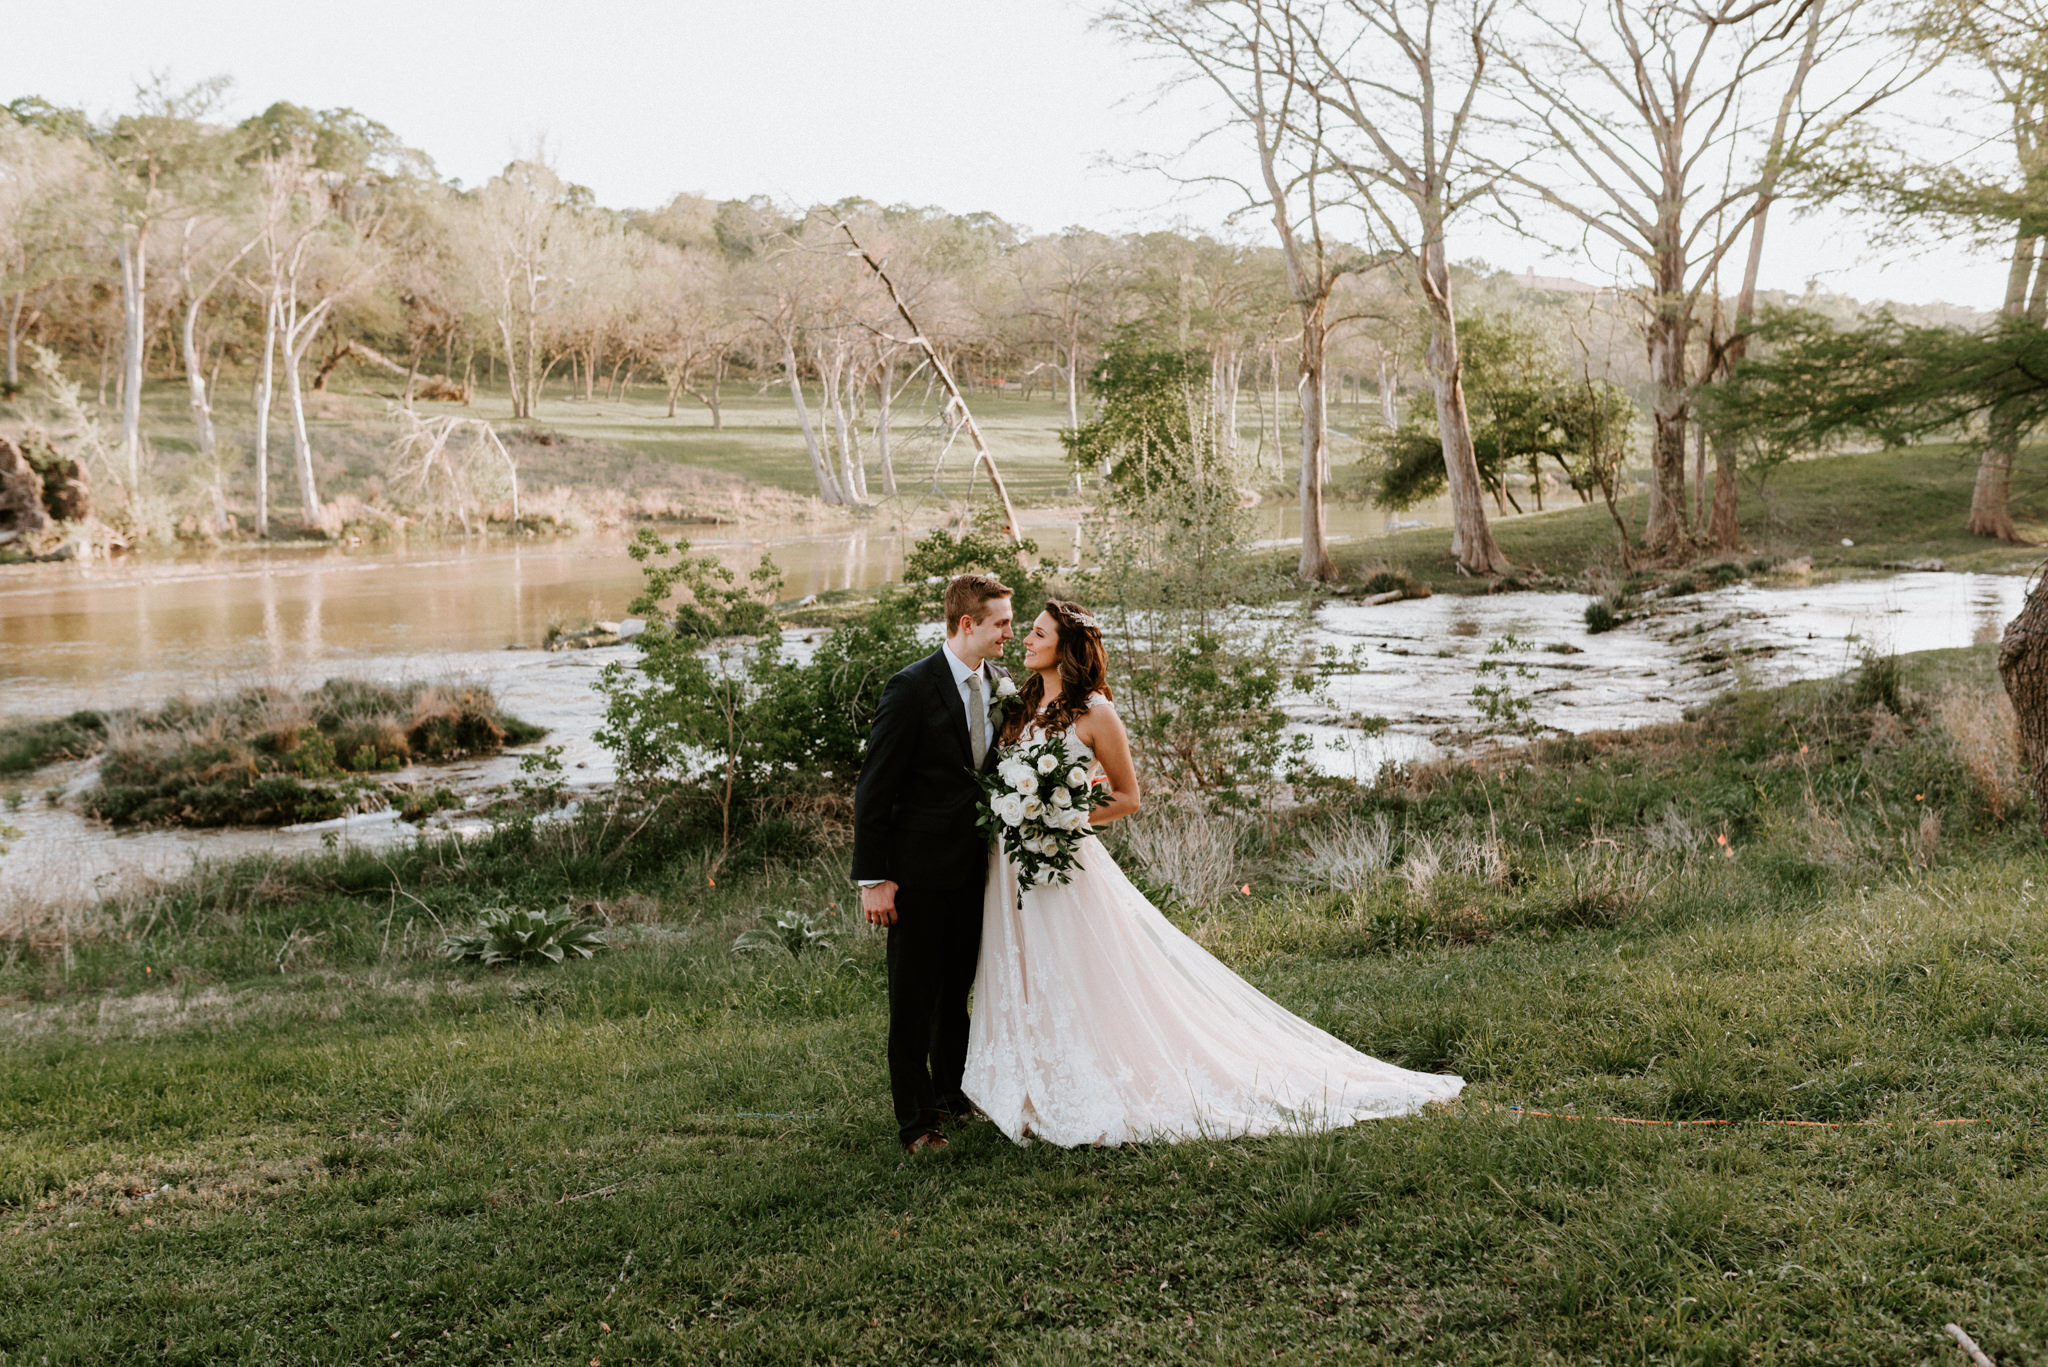 sunny-spring-wedding-wildflowers-log-cabin-bride-details-forest-the-waters-point-wimberley-texas-kerlyn-van-gelder-photography-austin-wedding-photographer